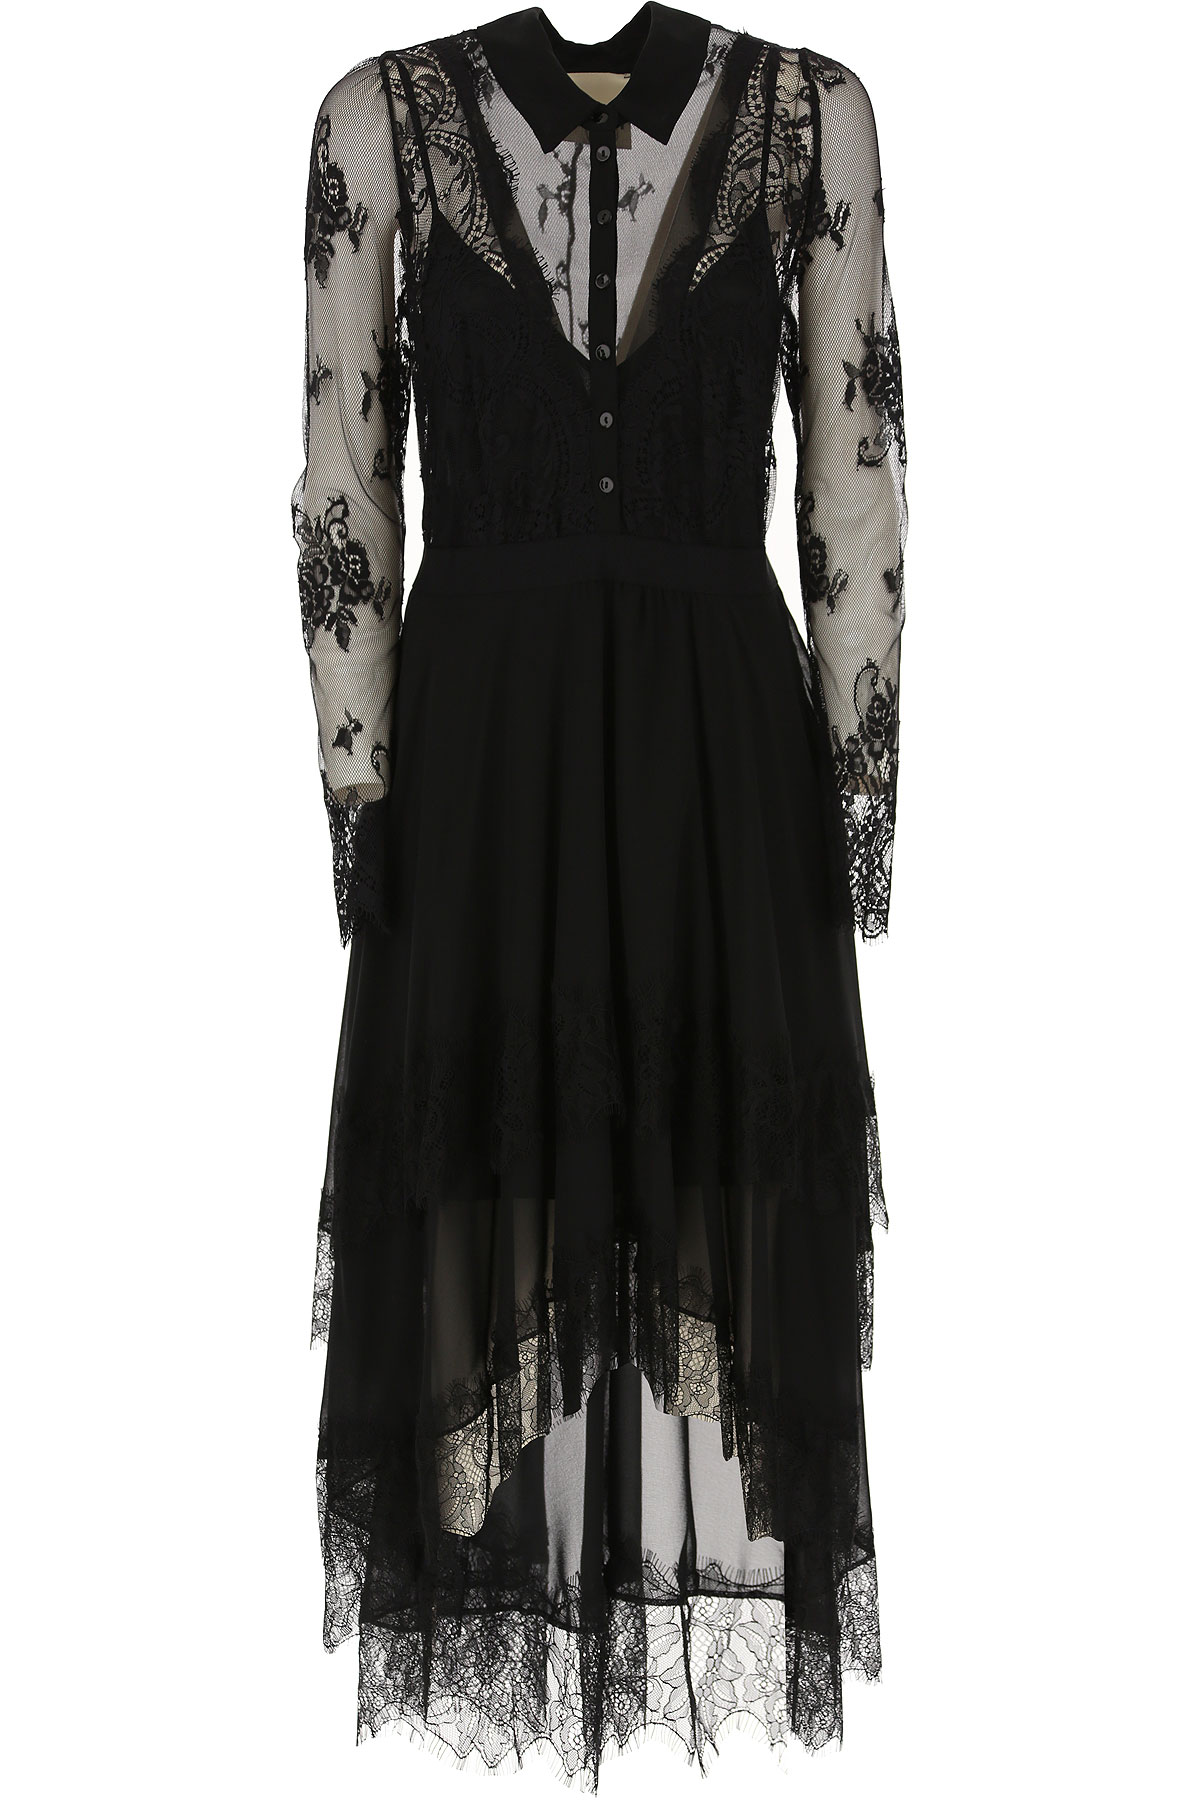 Aniye By Dress for Women, Evening Cocktail Party On Sale, Black, polyestere, 2019, 2 4 6